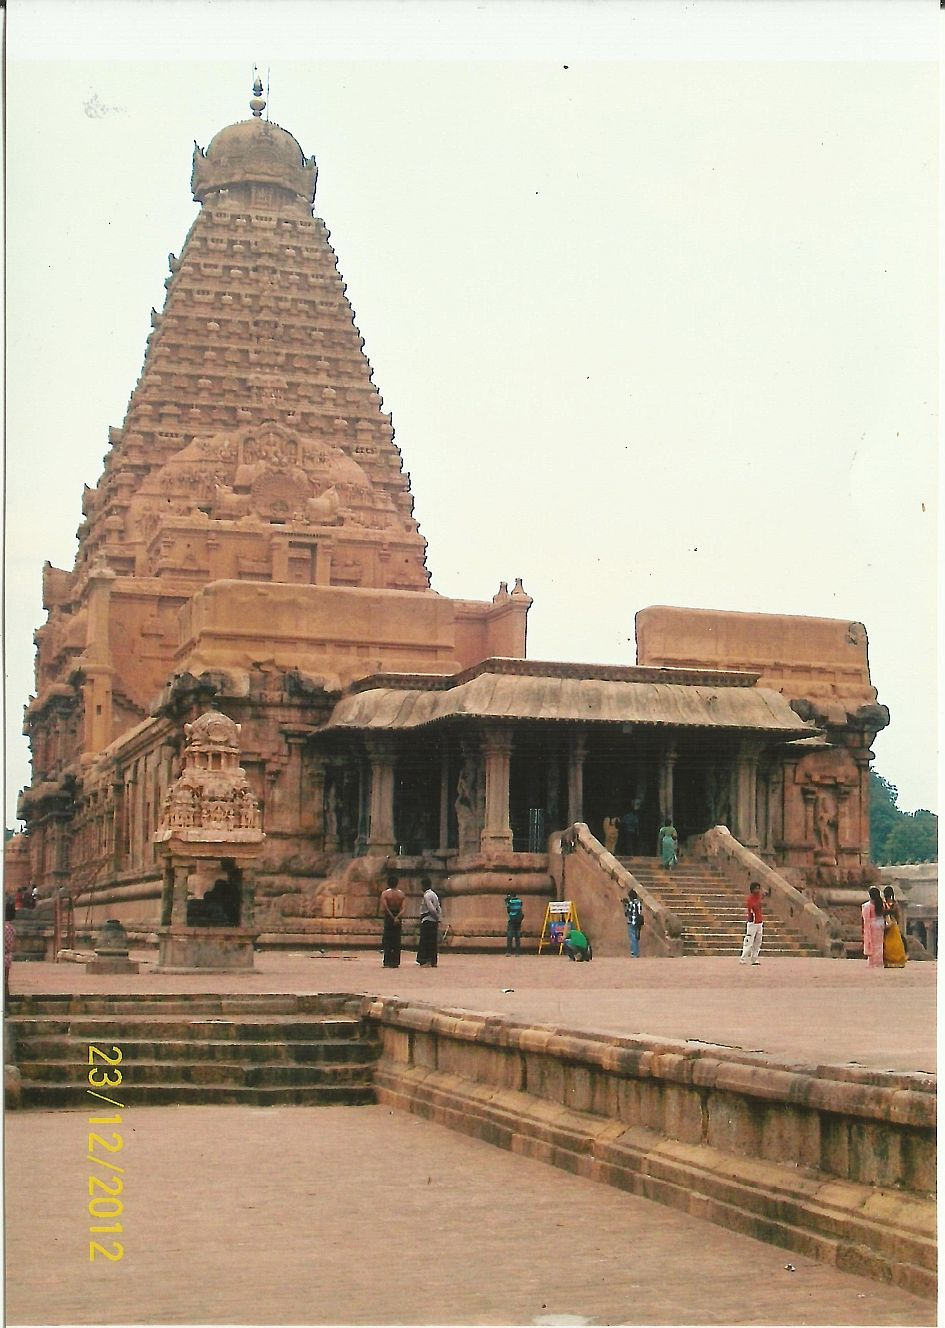 Big Temple Tower